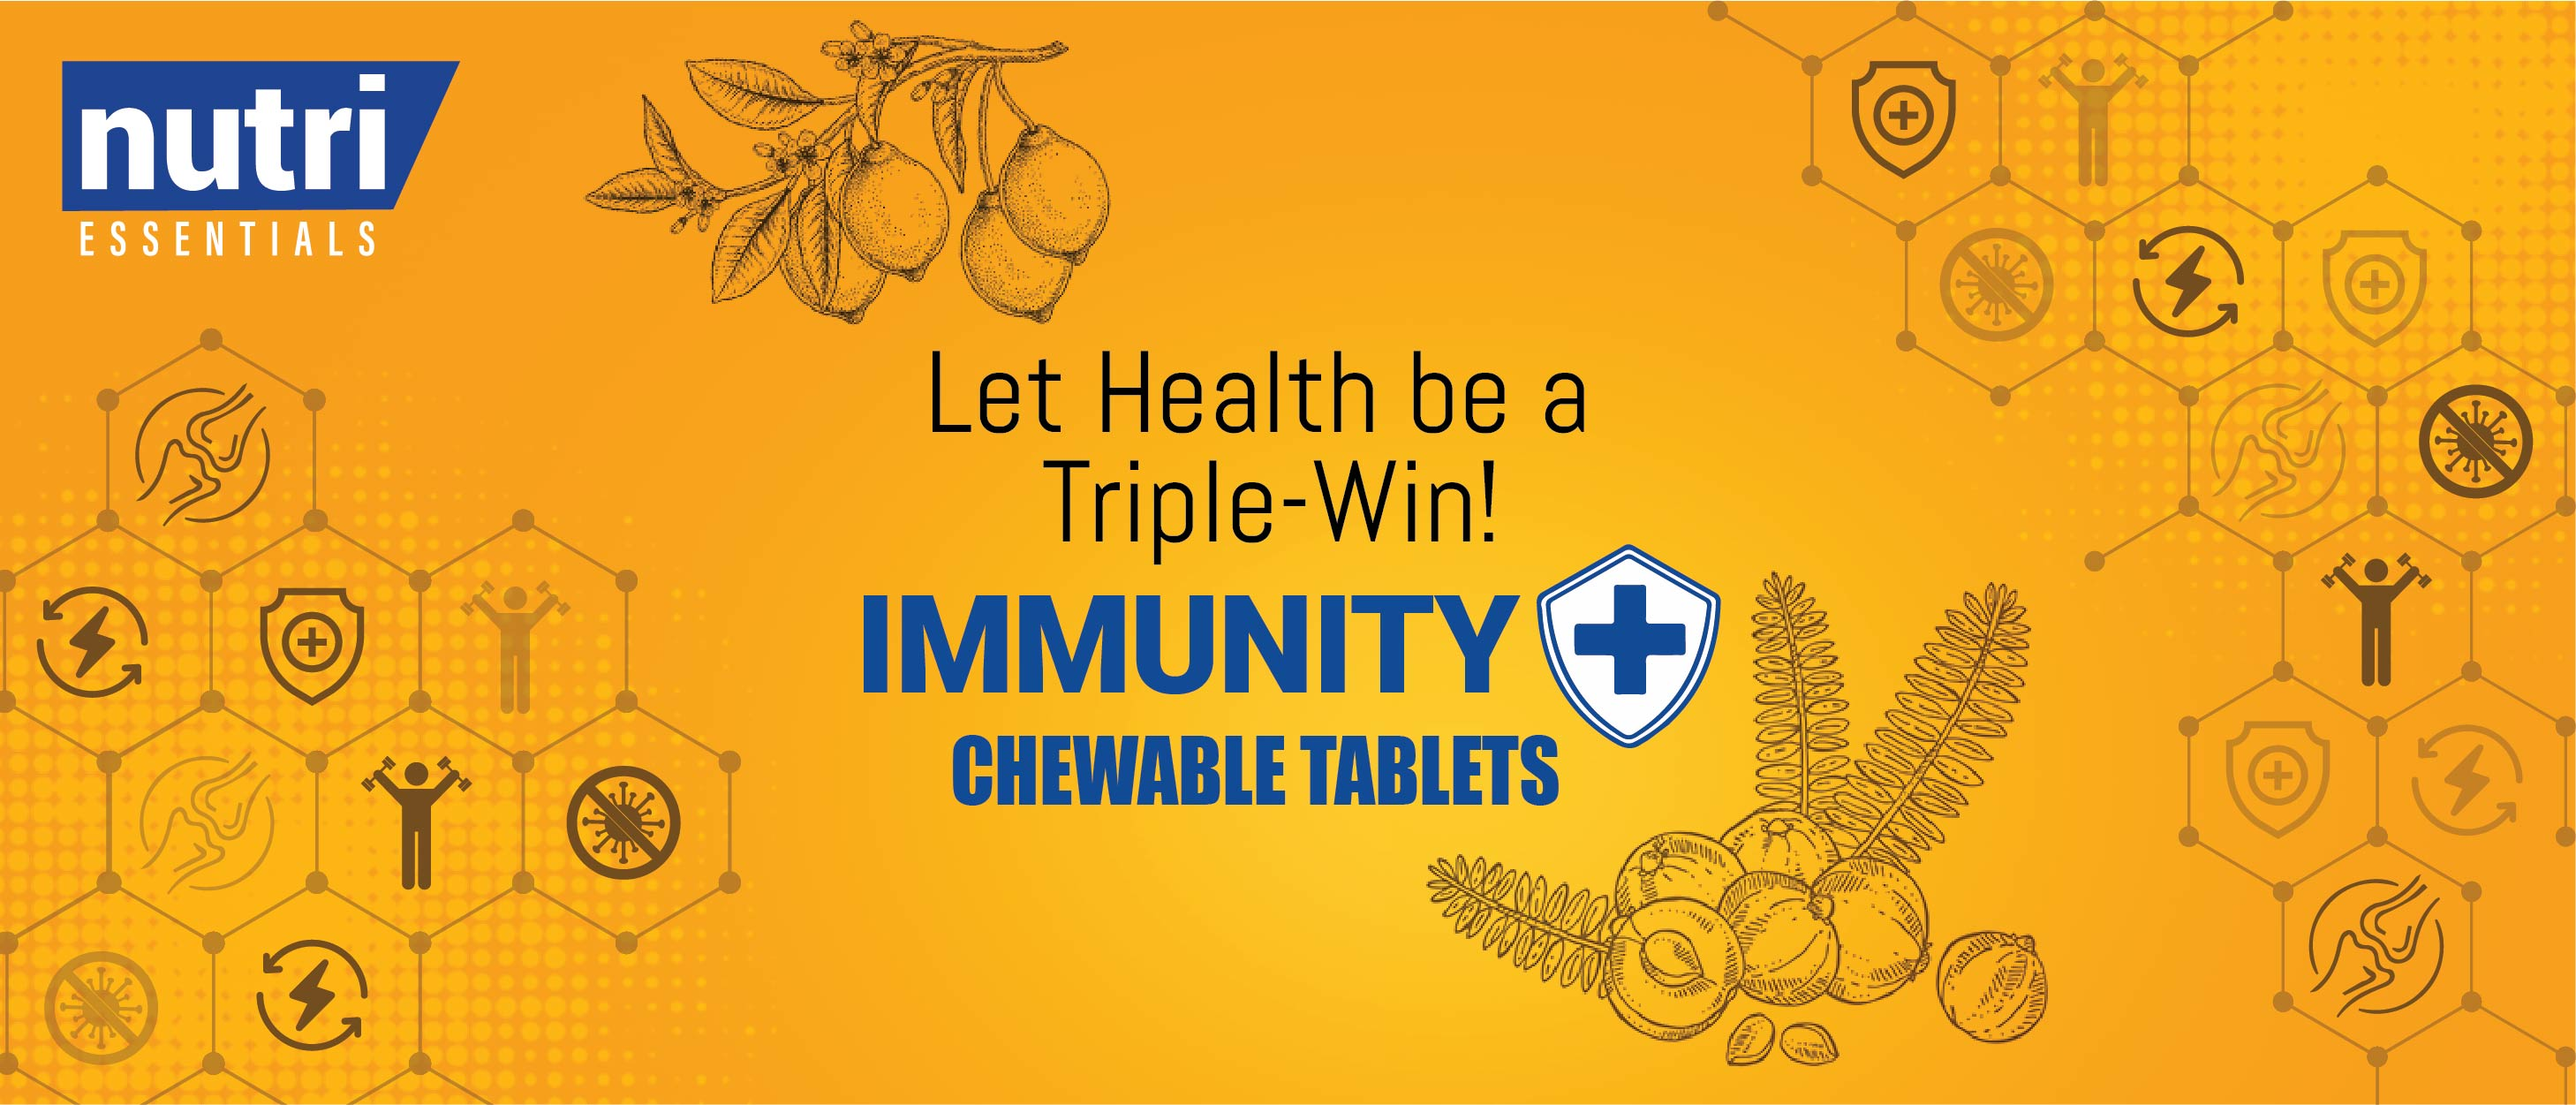 Let Health be a Triple-Win!